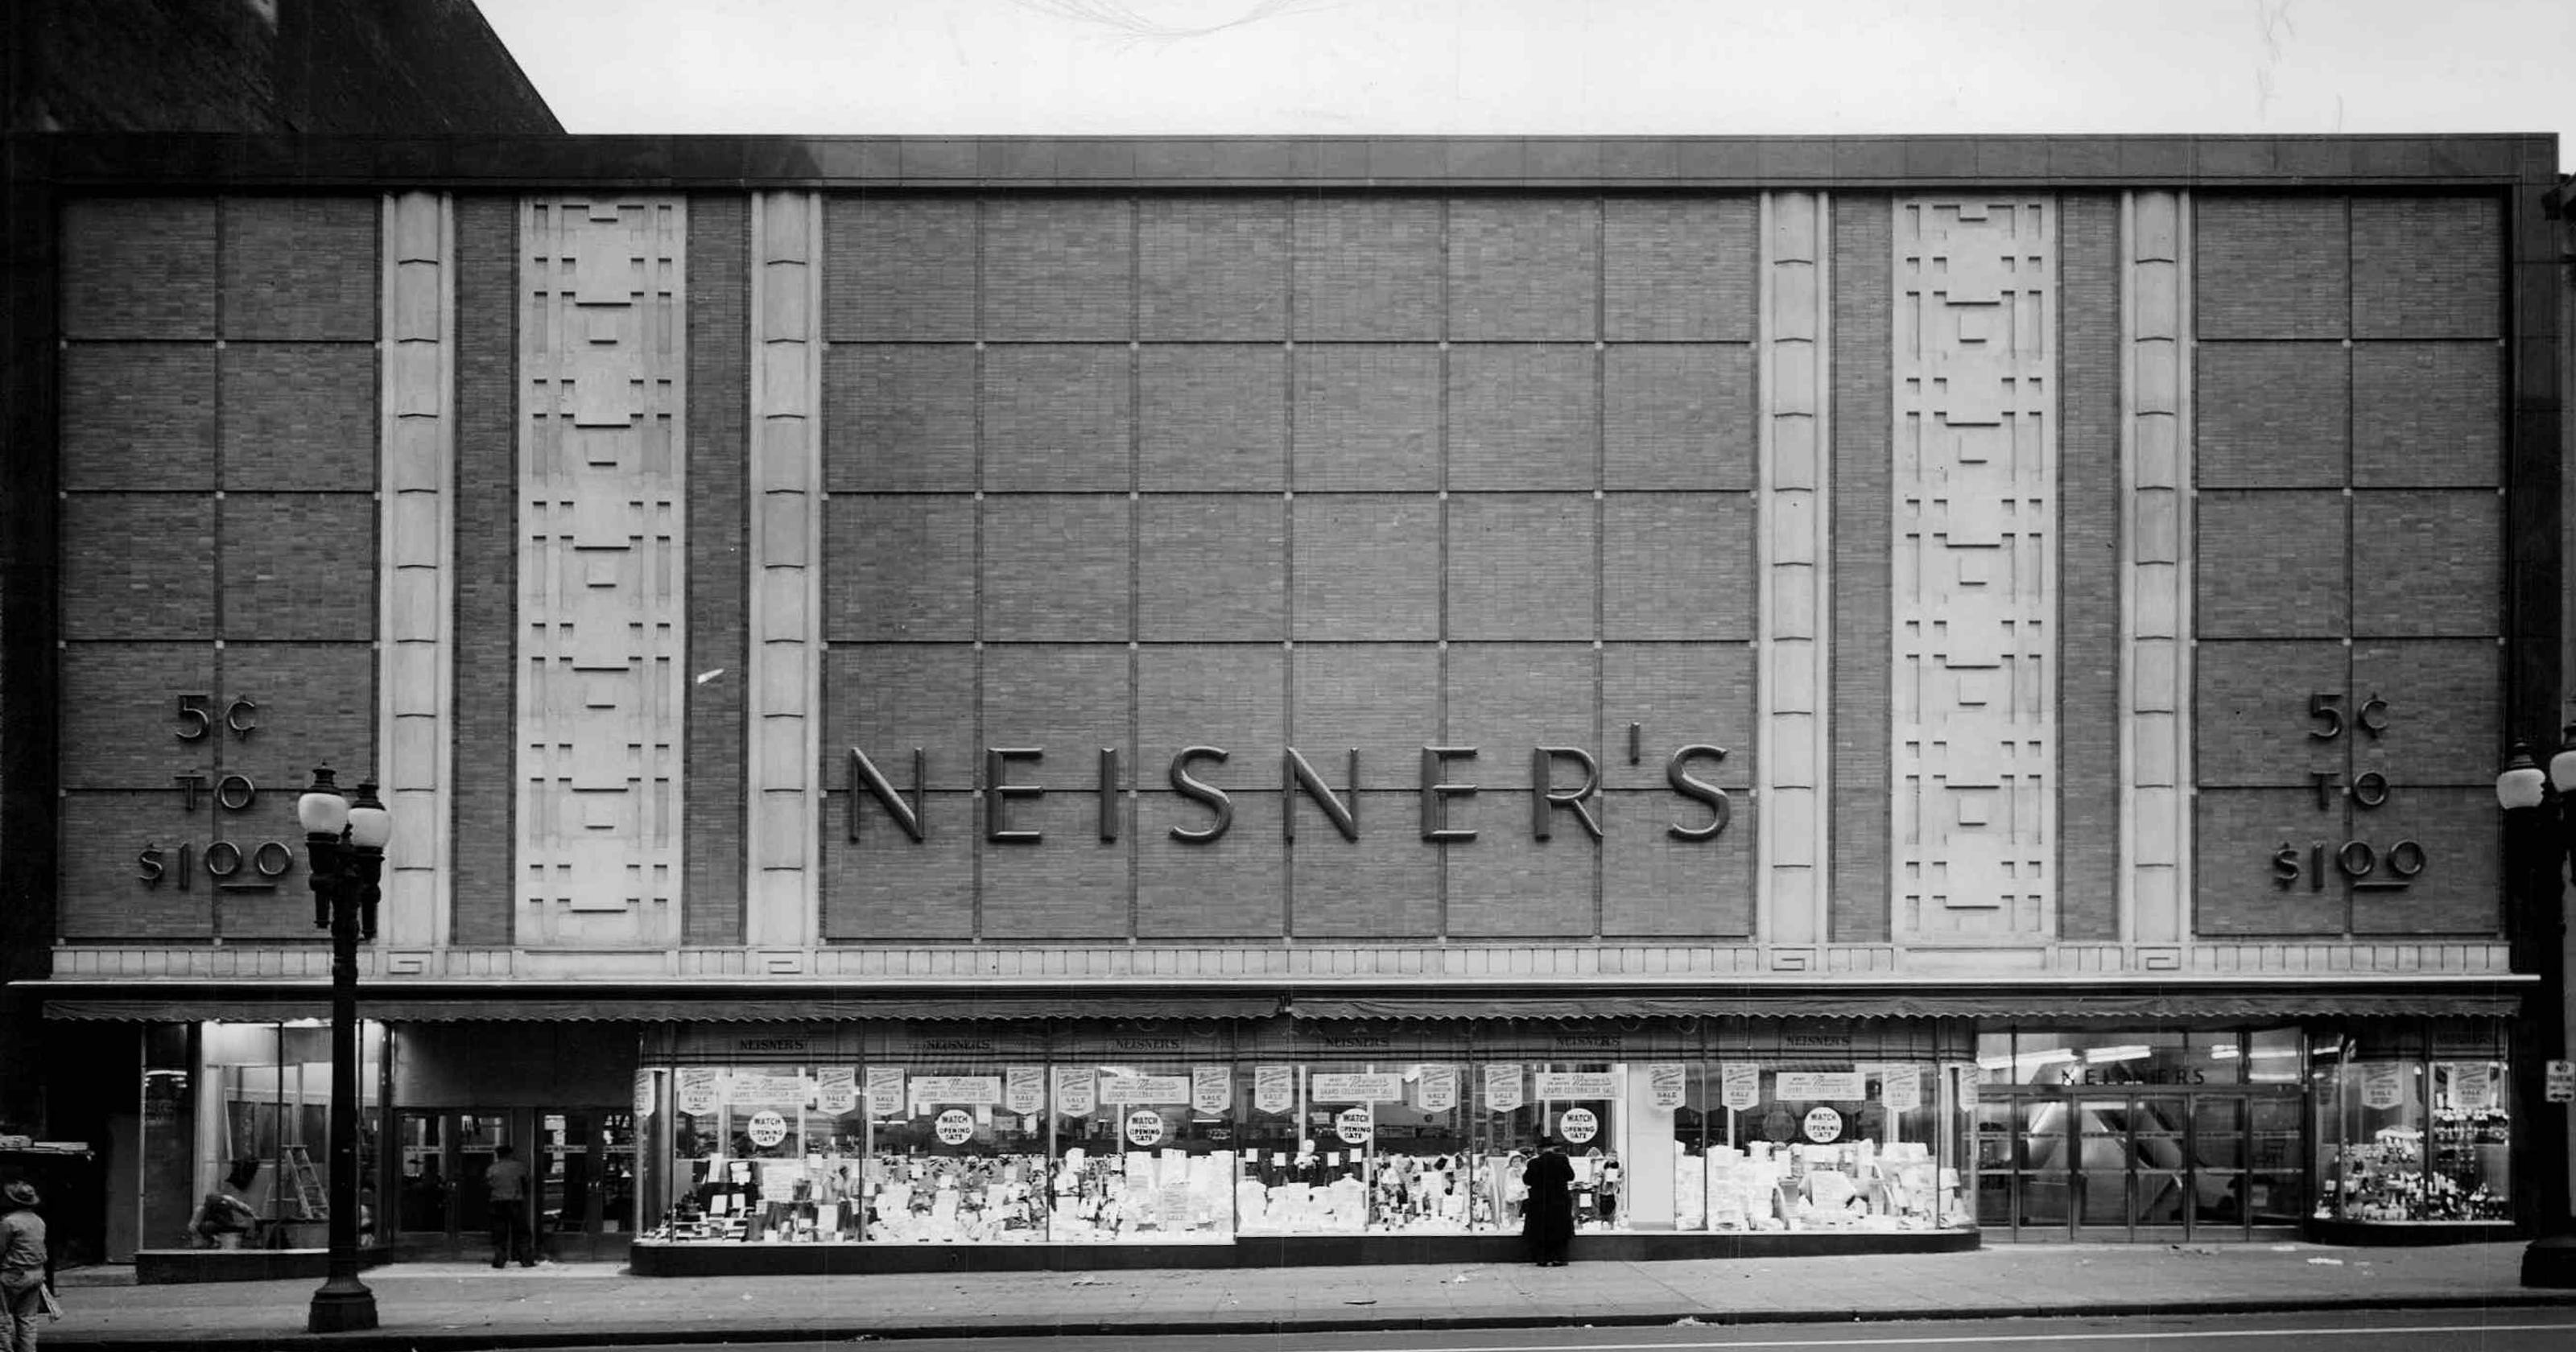 Whatever Happened To     Neisner's?